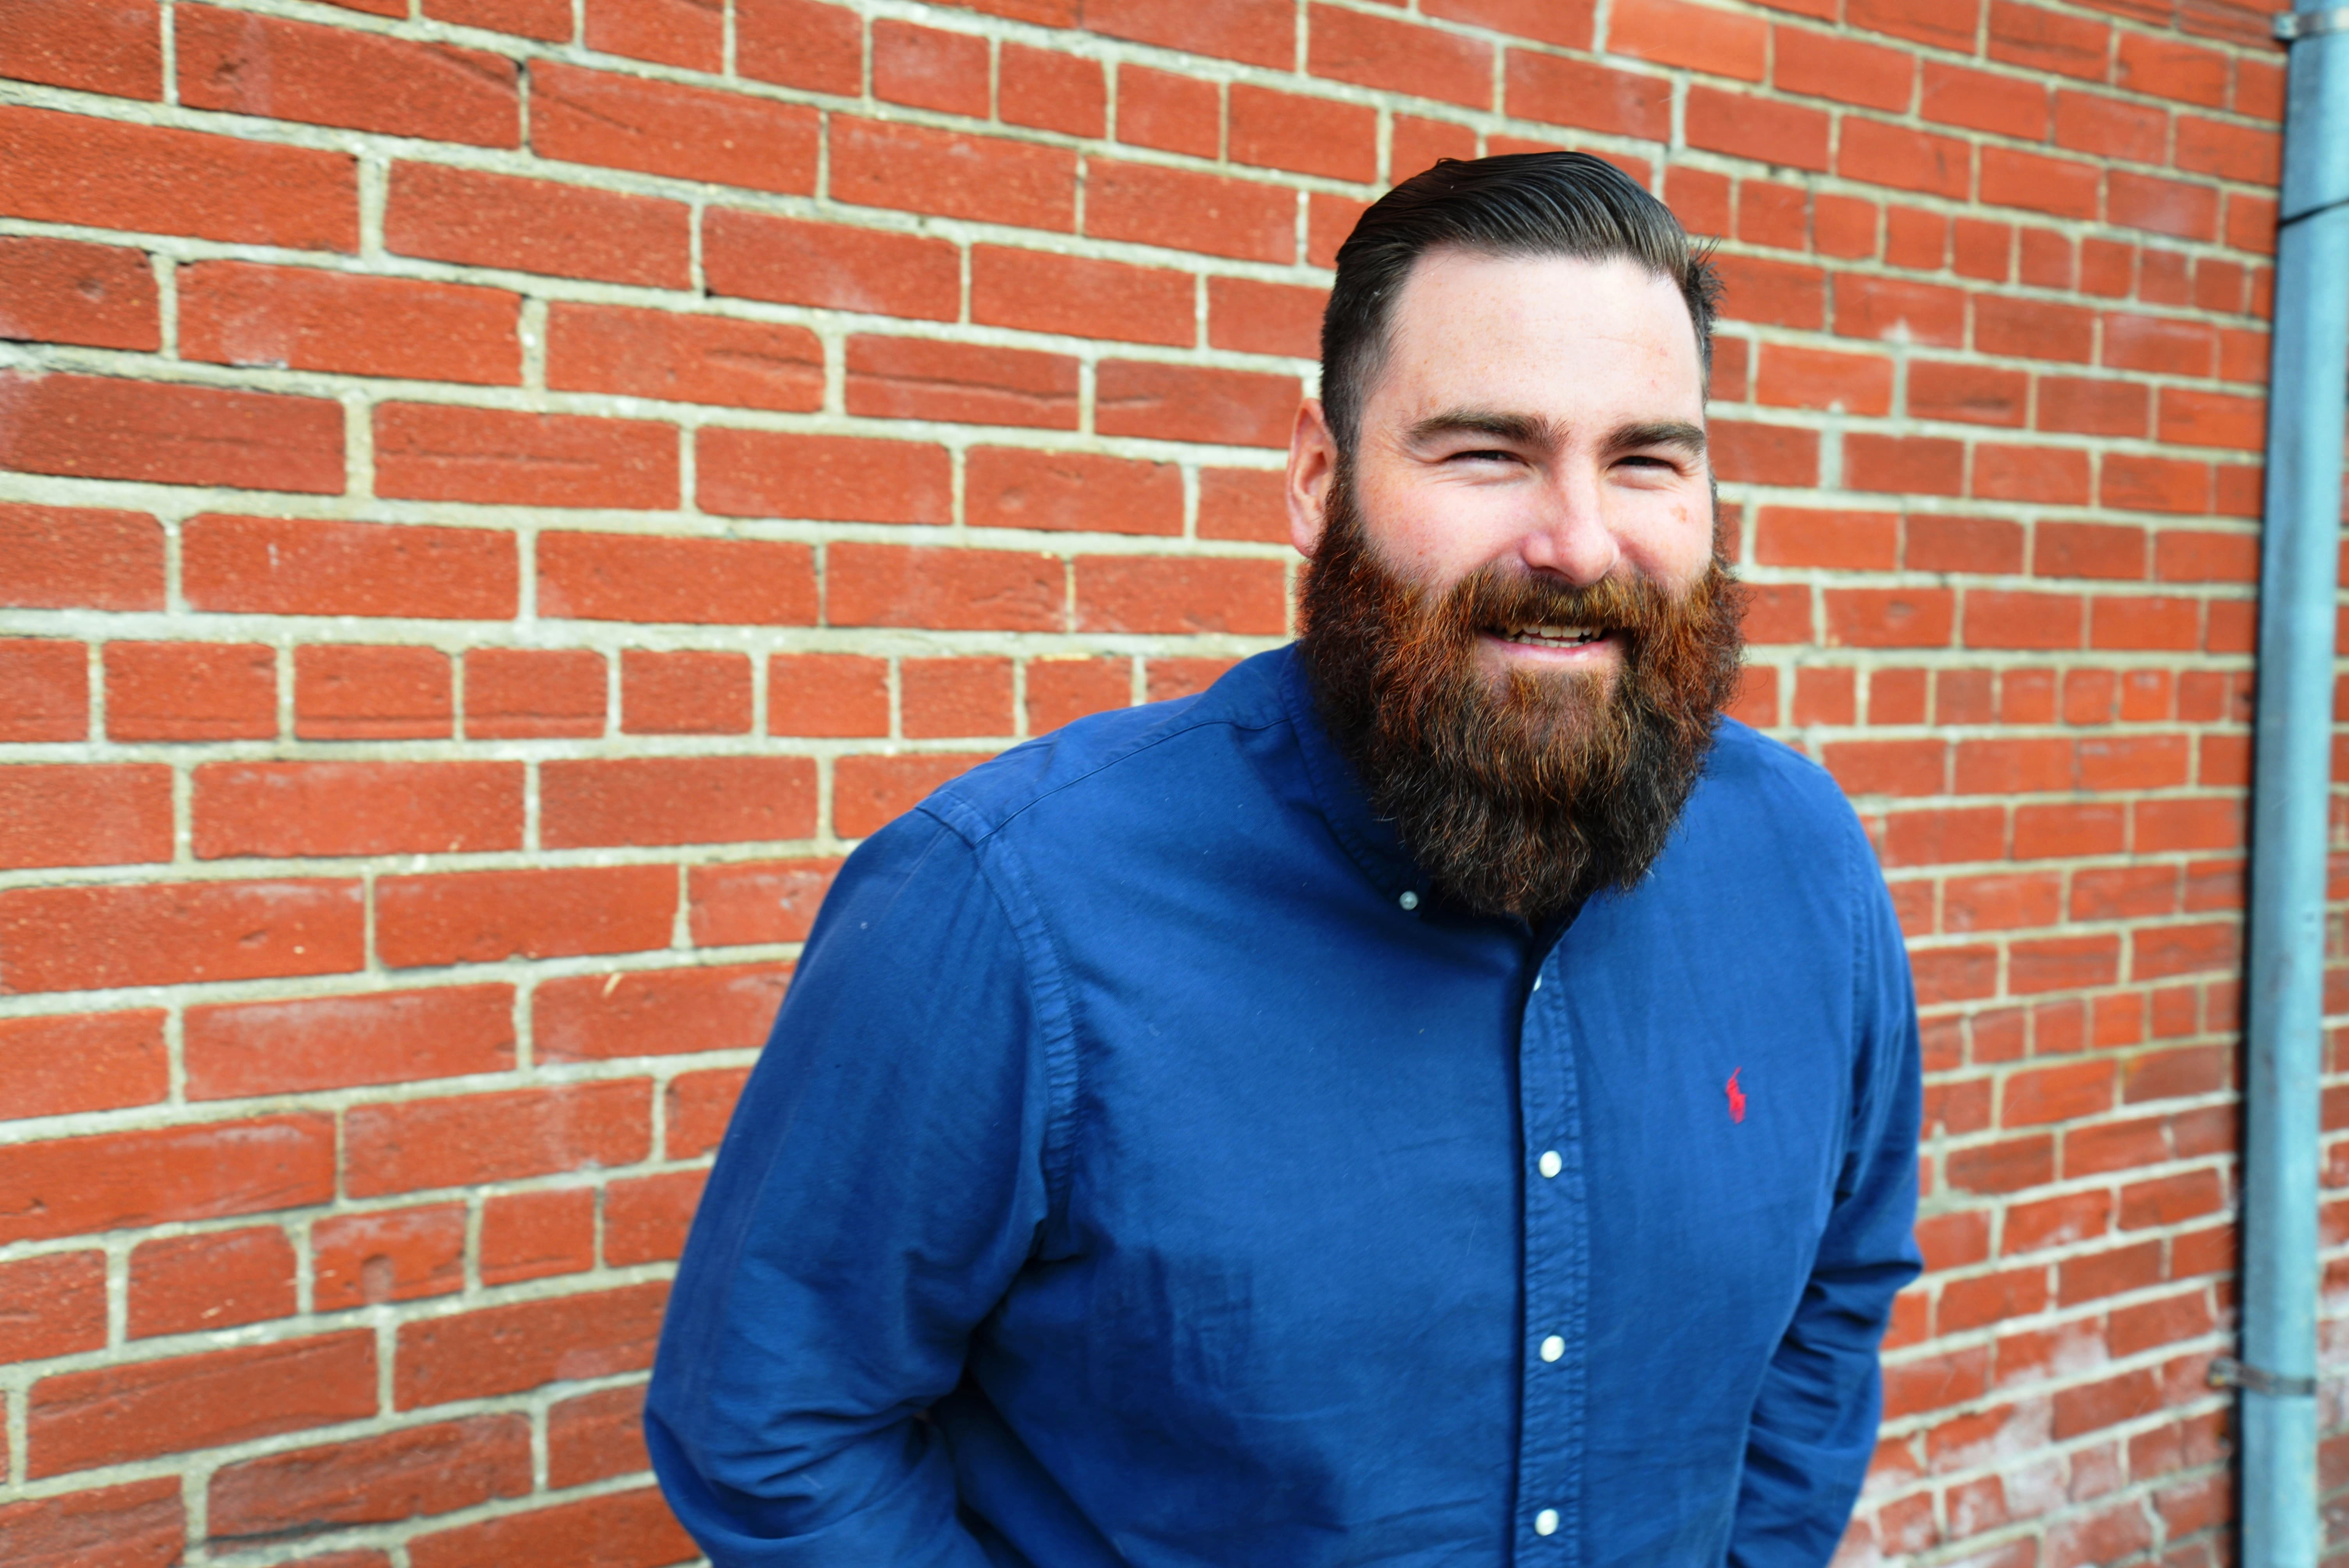 Intrepid's North American director moves into new role